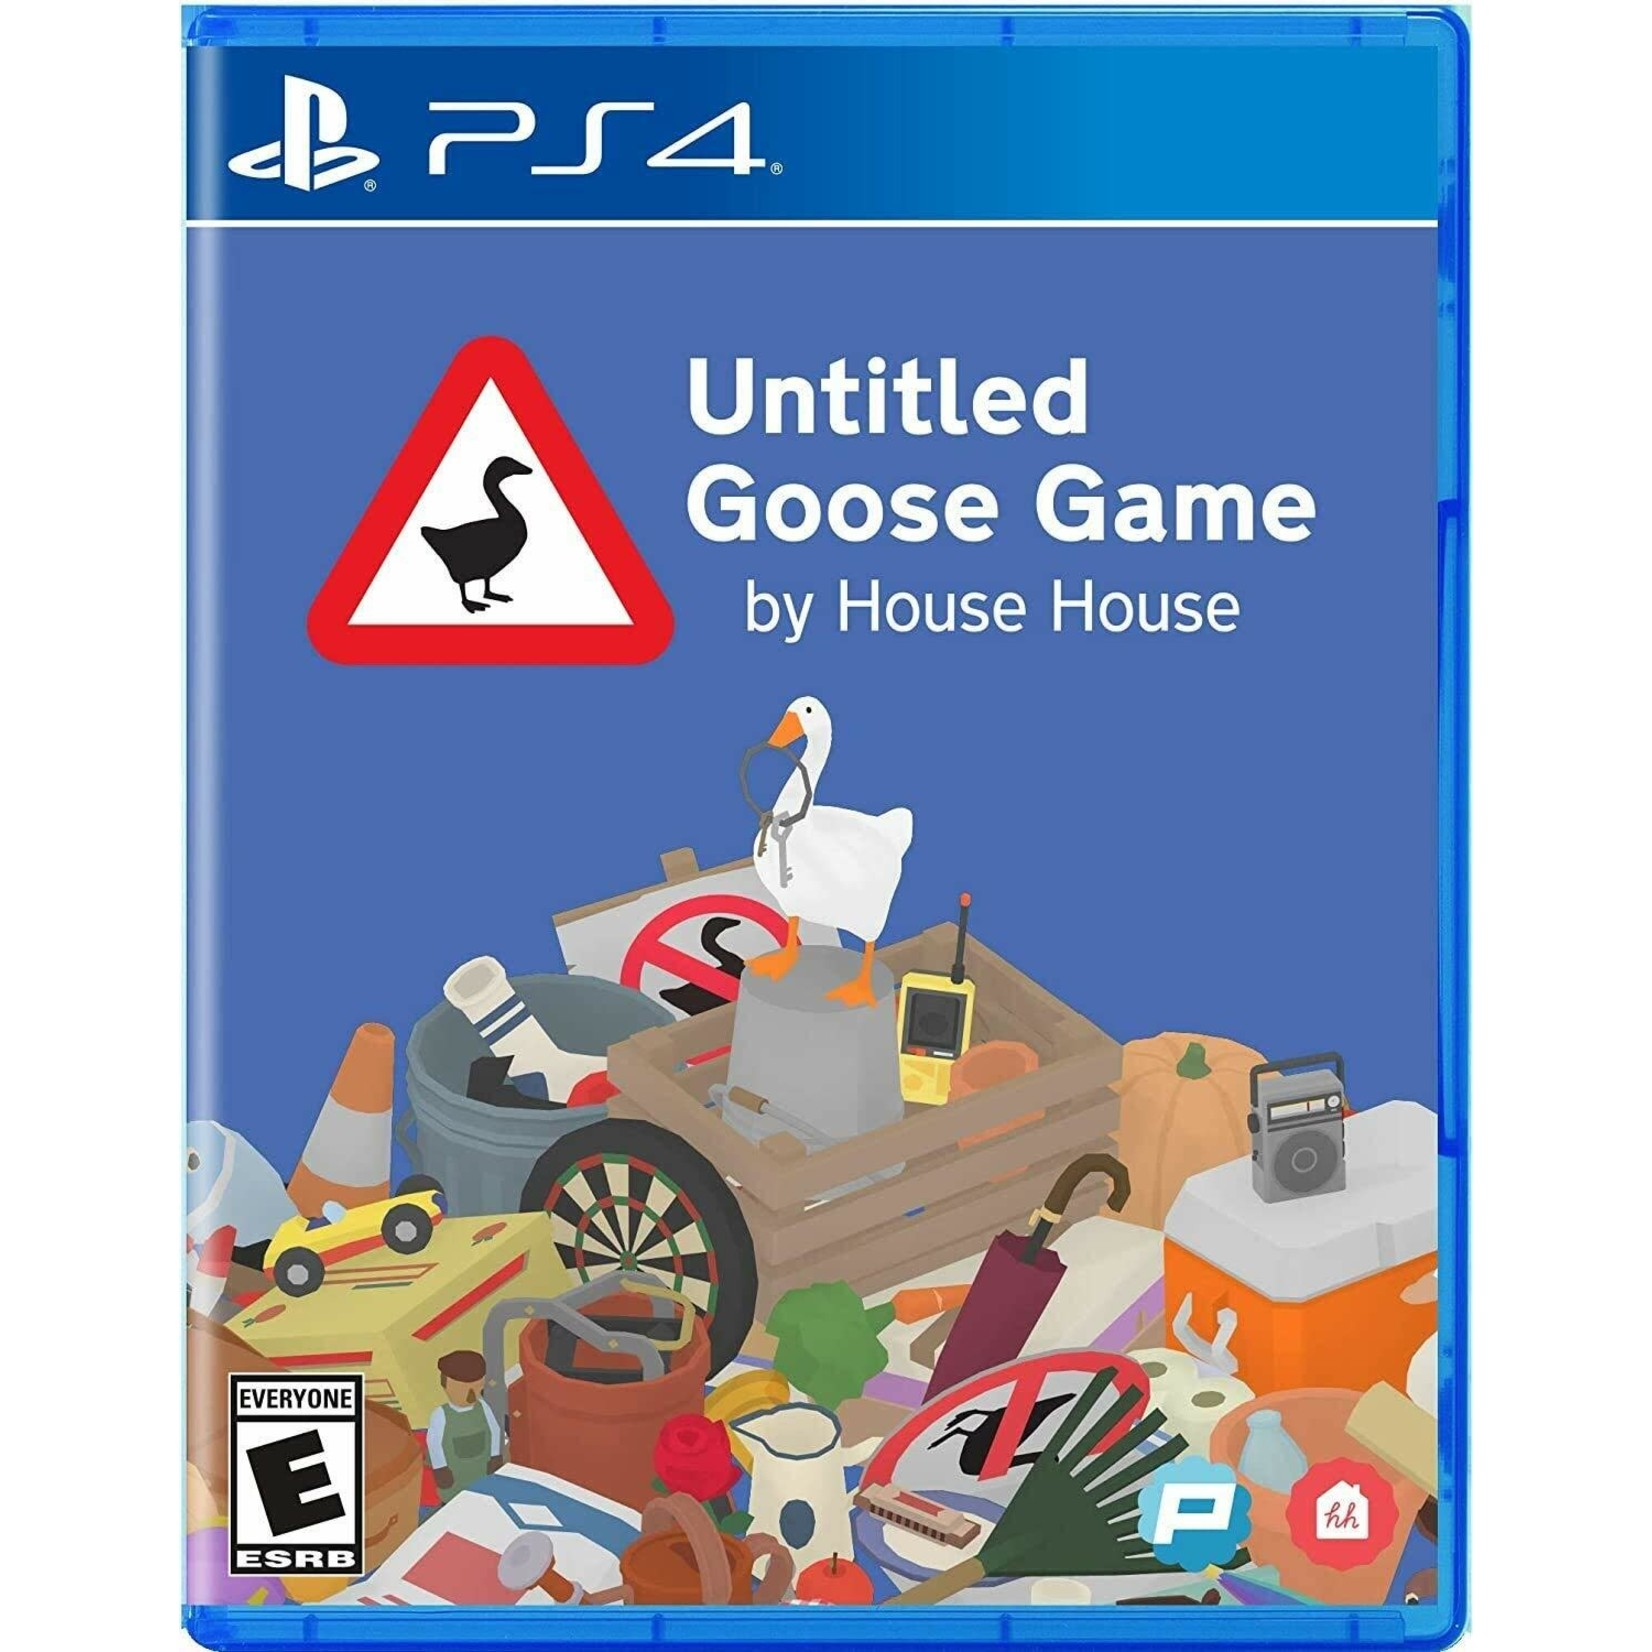 PS4-UNTITLED GOOSE GAME